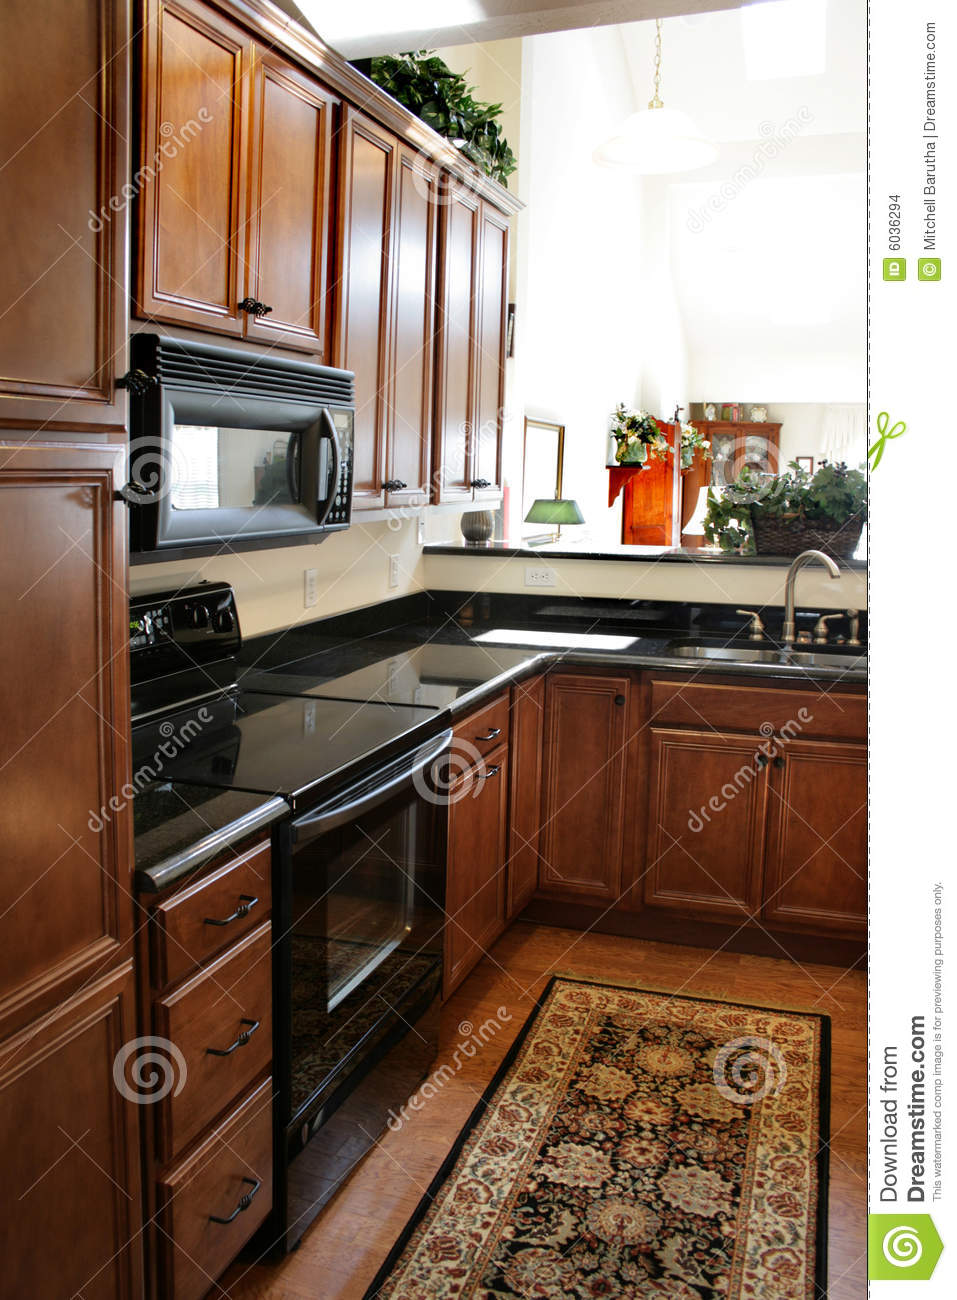 small comfortable chair wicker papasan kitchen wood cabinets black and stainless stove stock photo - image of oven, design: 6036294